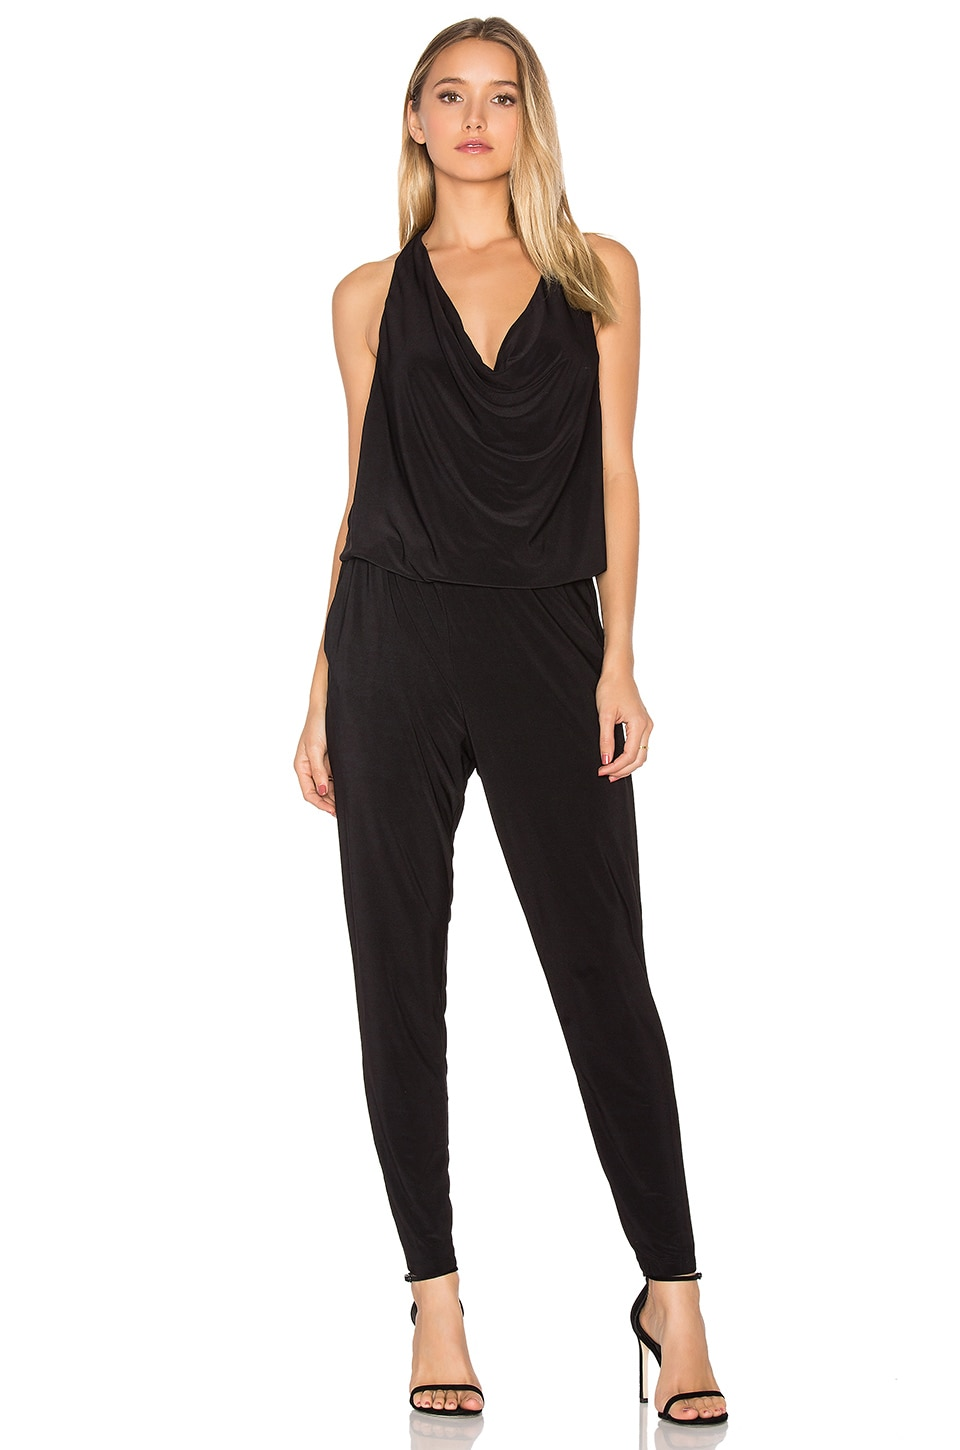 Bobi BLACK Sleeveless Jumpsuit in Black